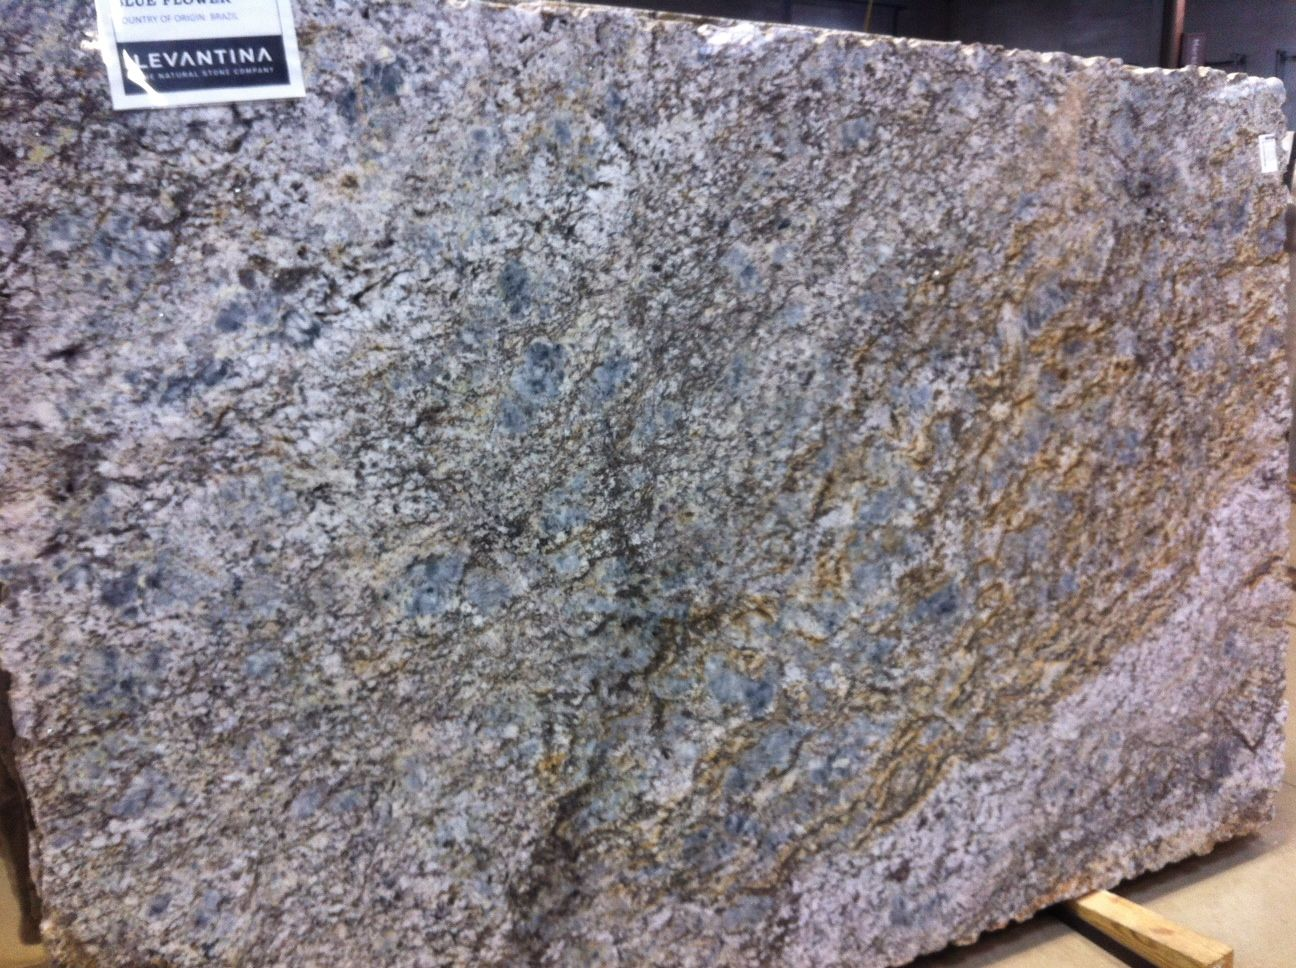 Just In Blue Fire Granite From Brazil Is A Swirling Dramatic Blue Stone With Both Light And Darker Vein Granite Countertops Light In The Dark Inspiration Wall